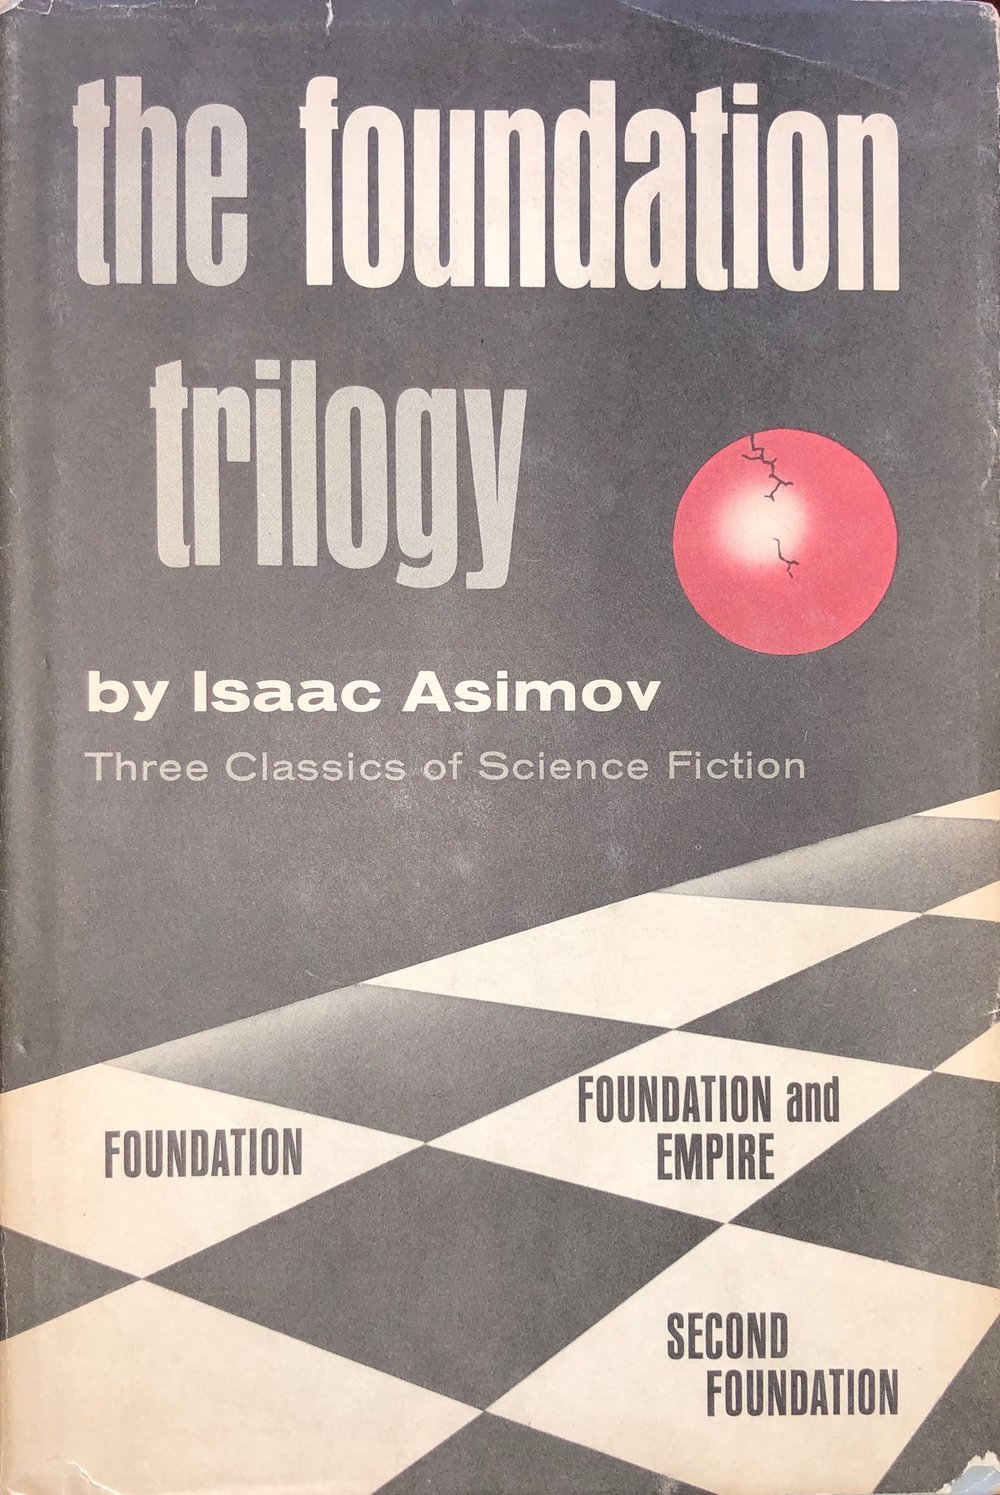 The front cover of my copy of Isaac Asimov's The Foundation Trilogy which I got from the Science Fiction Book Club when I was 13